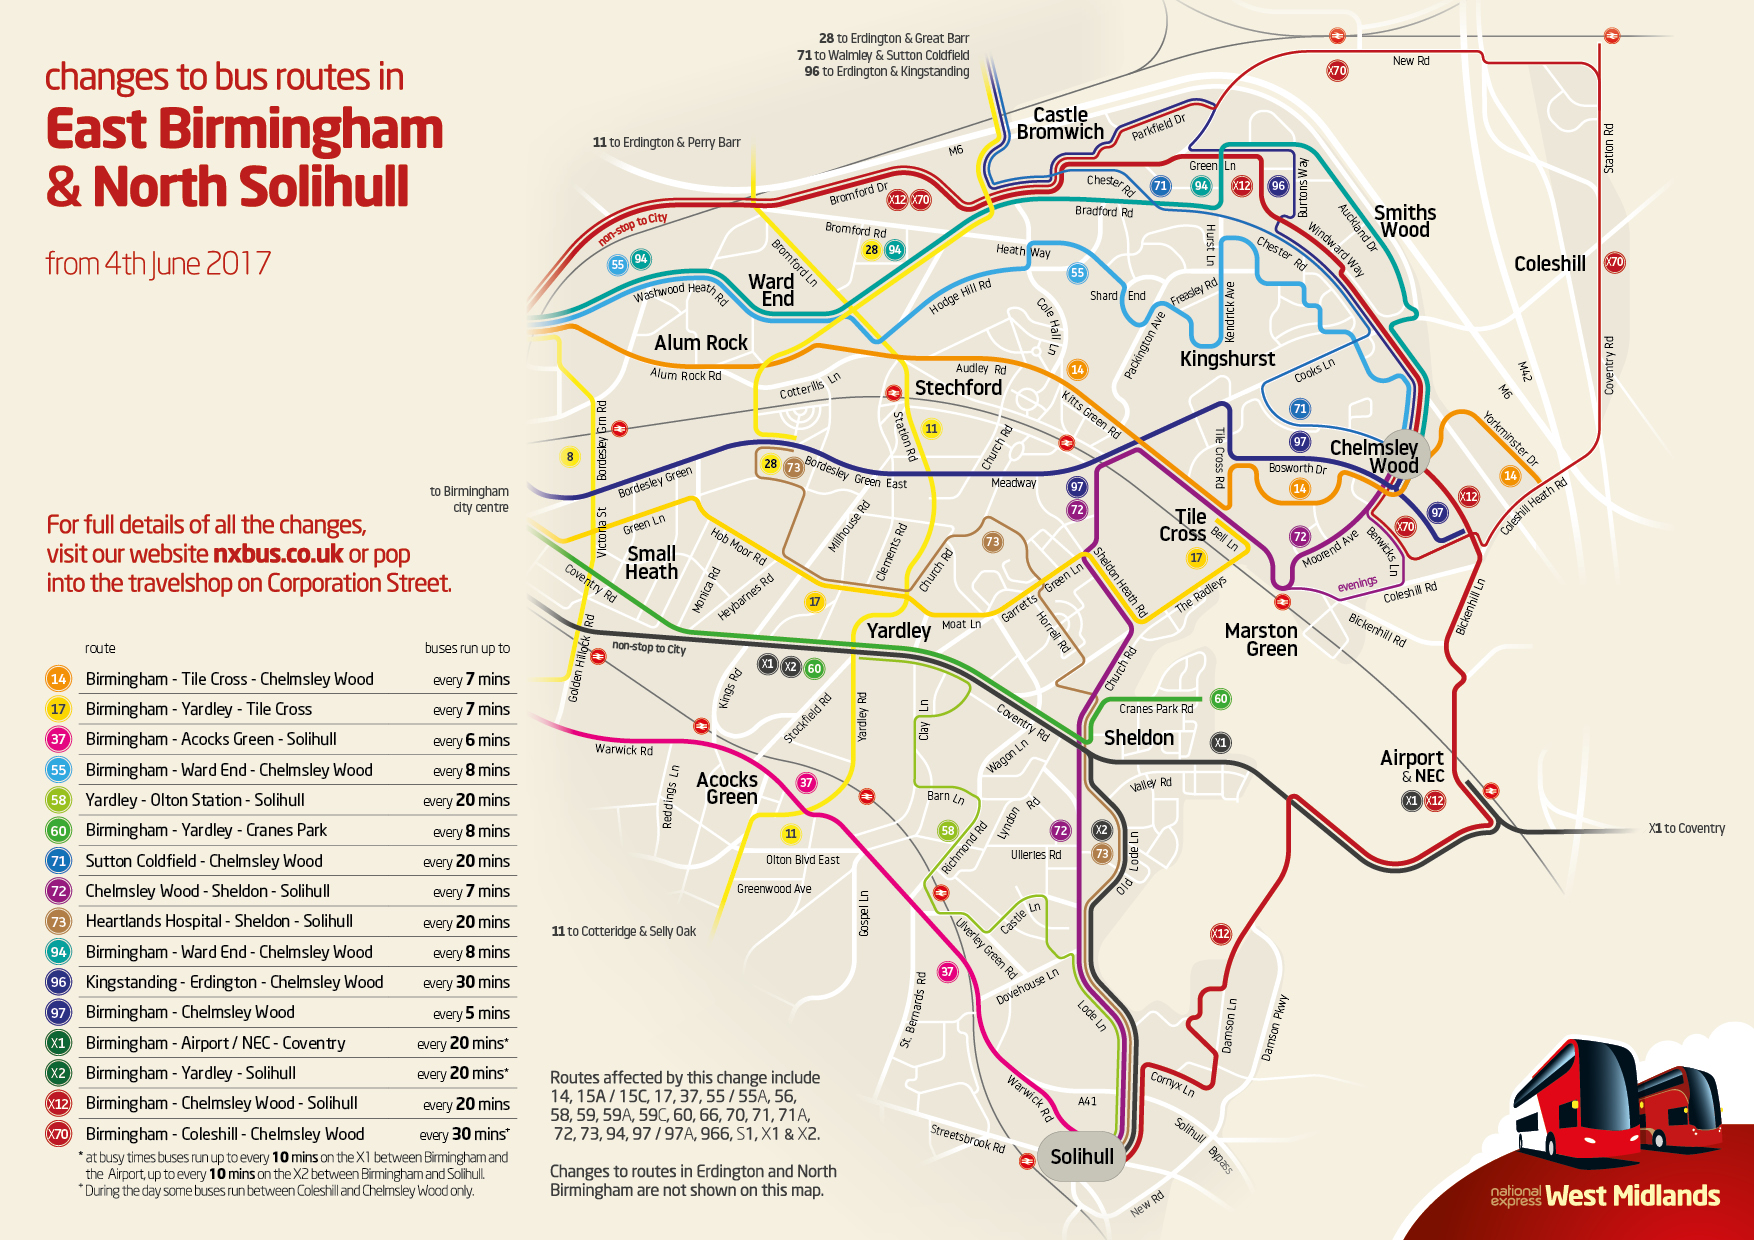 East Birmingham Amp Solihull Service Changes From Sunday 4th